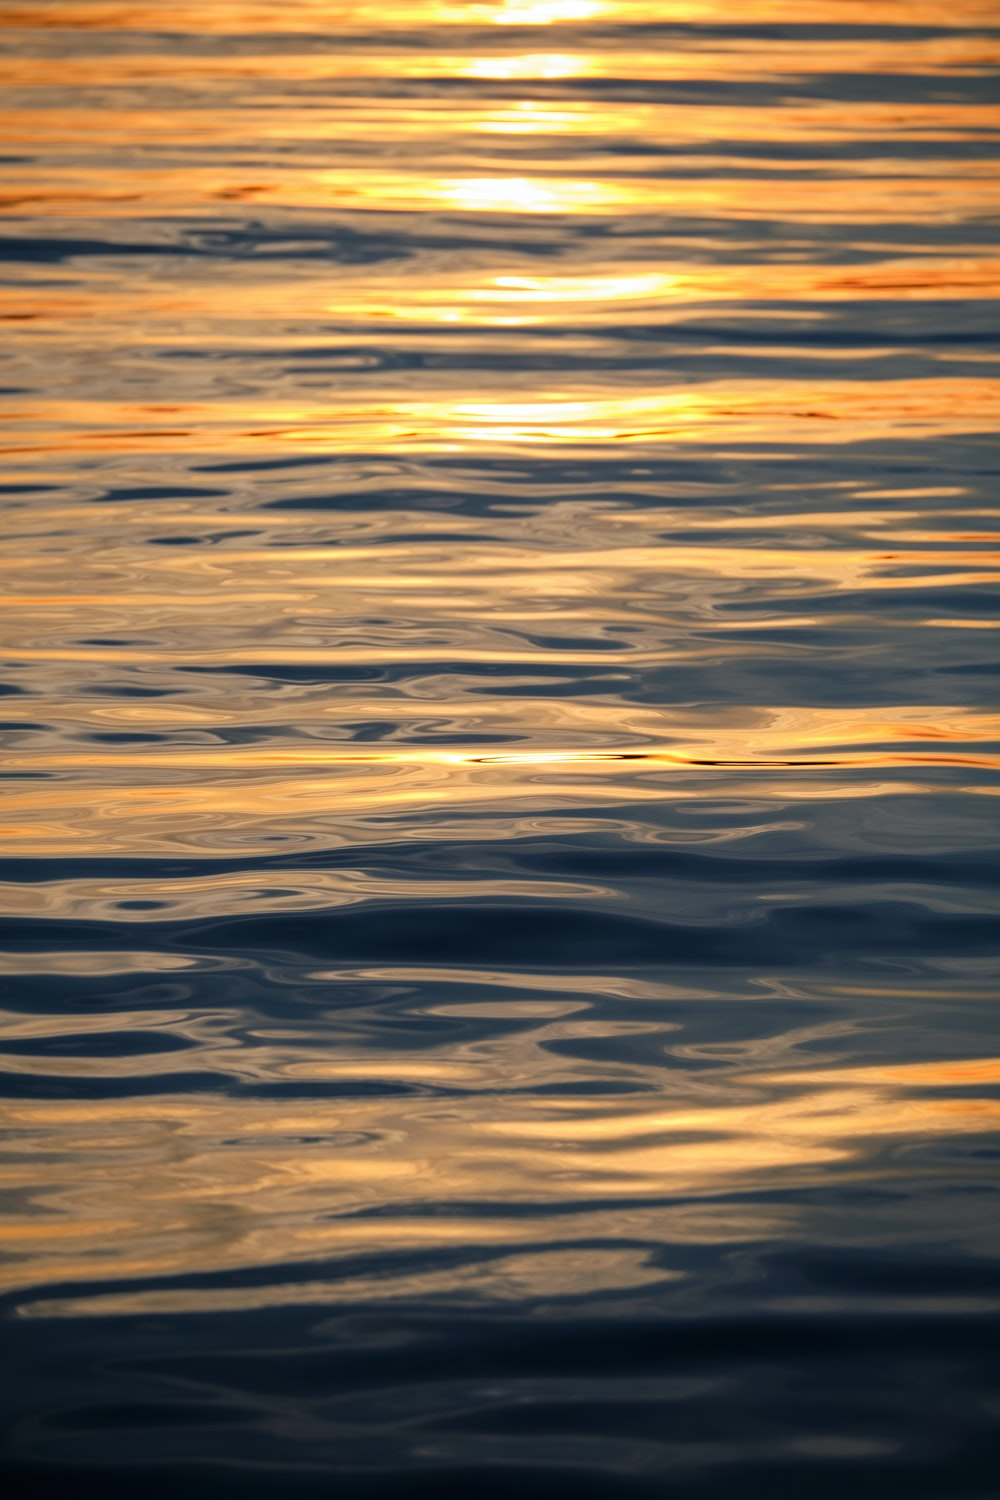 body of water during sunset